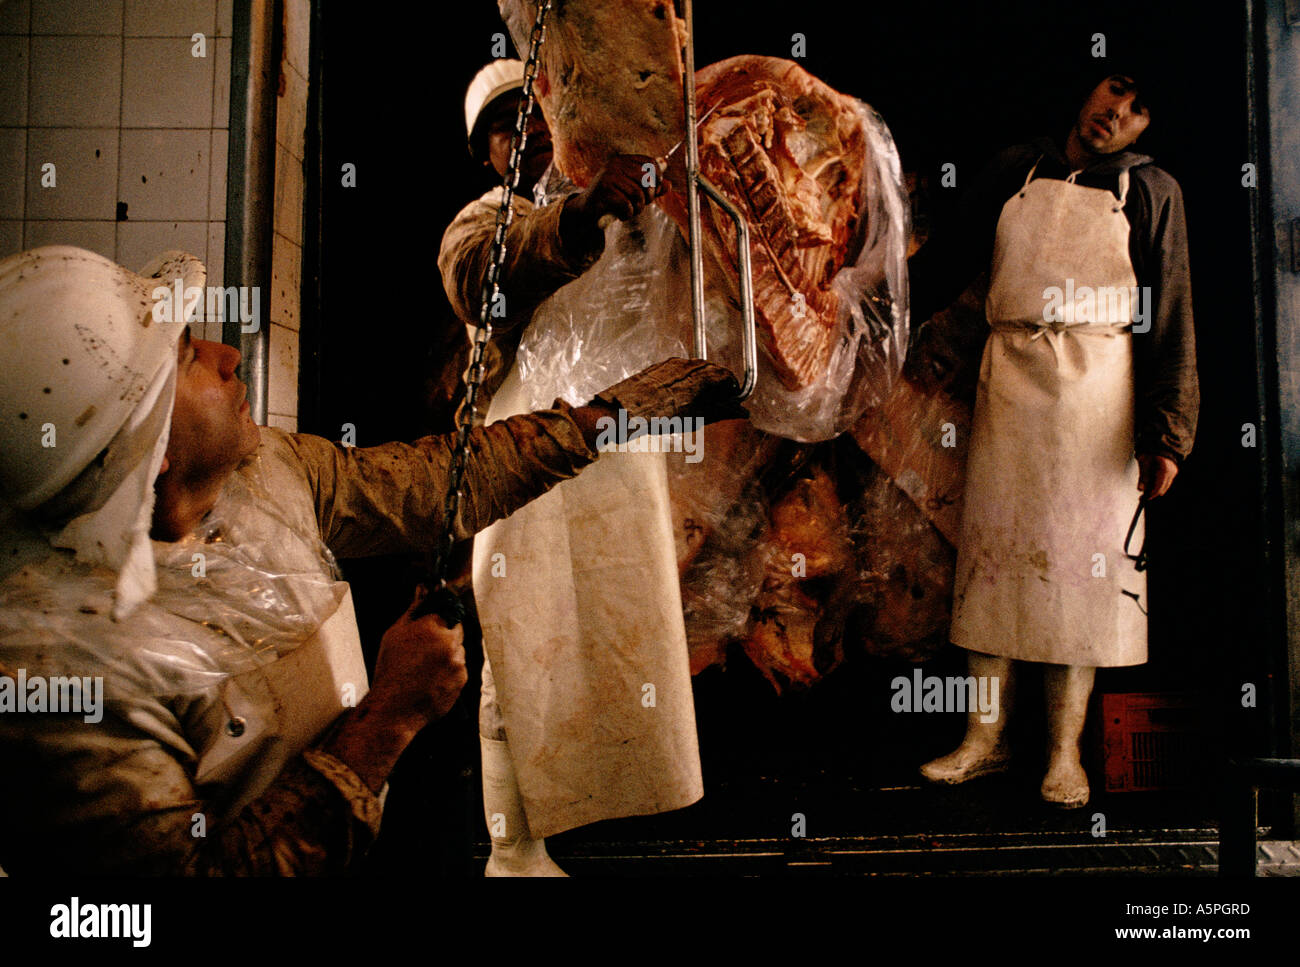 HALF SIDES OF BEEF ARE TAKEN FROM THE SLAUGHTER HOUSE TO INDIVIDUAL BUTCHER SHOPS in BUENOS AIRES ARGENTINA - Stock Image